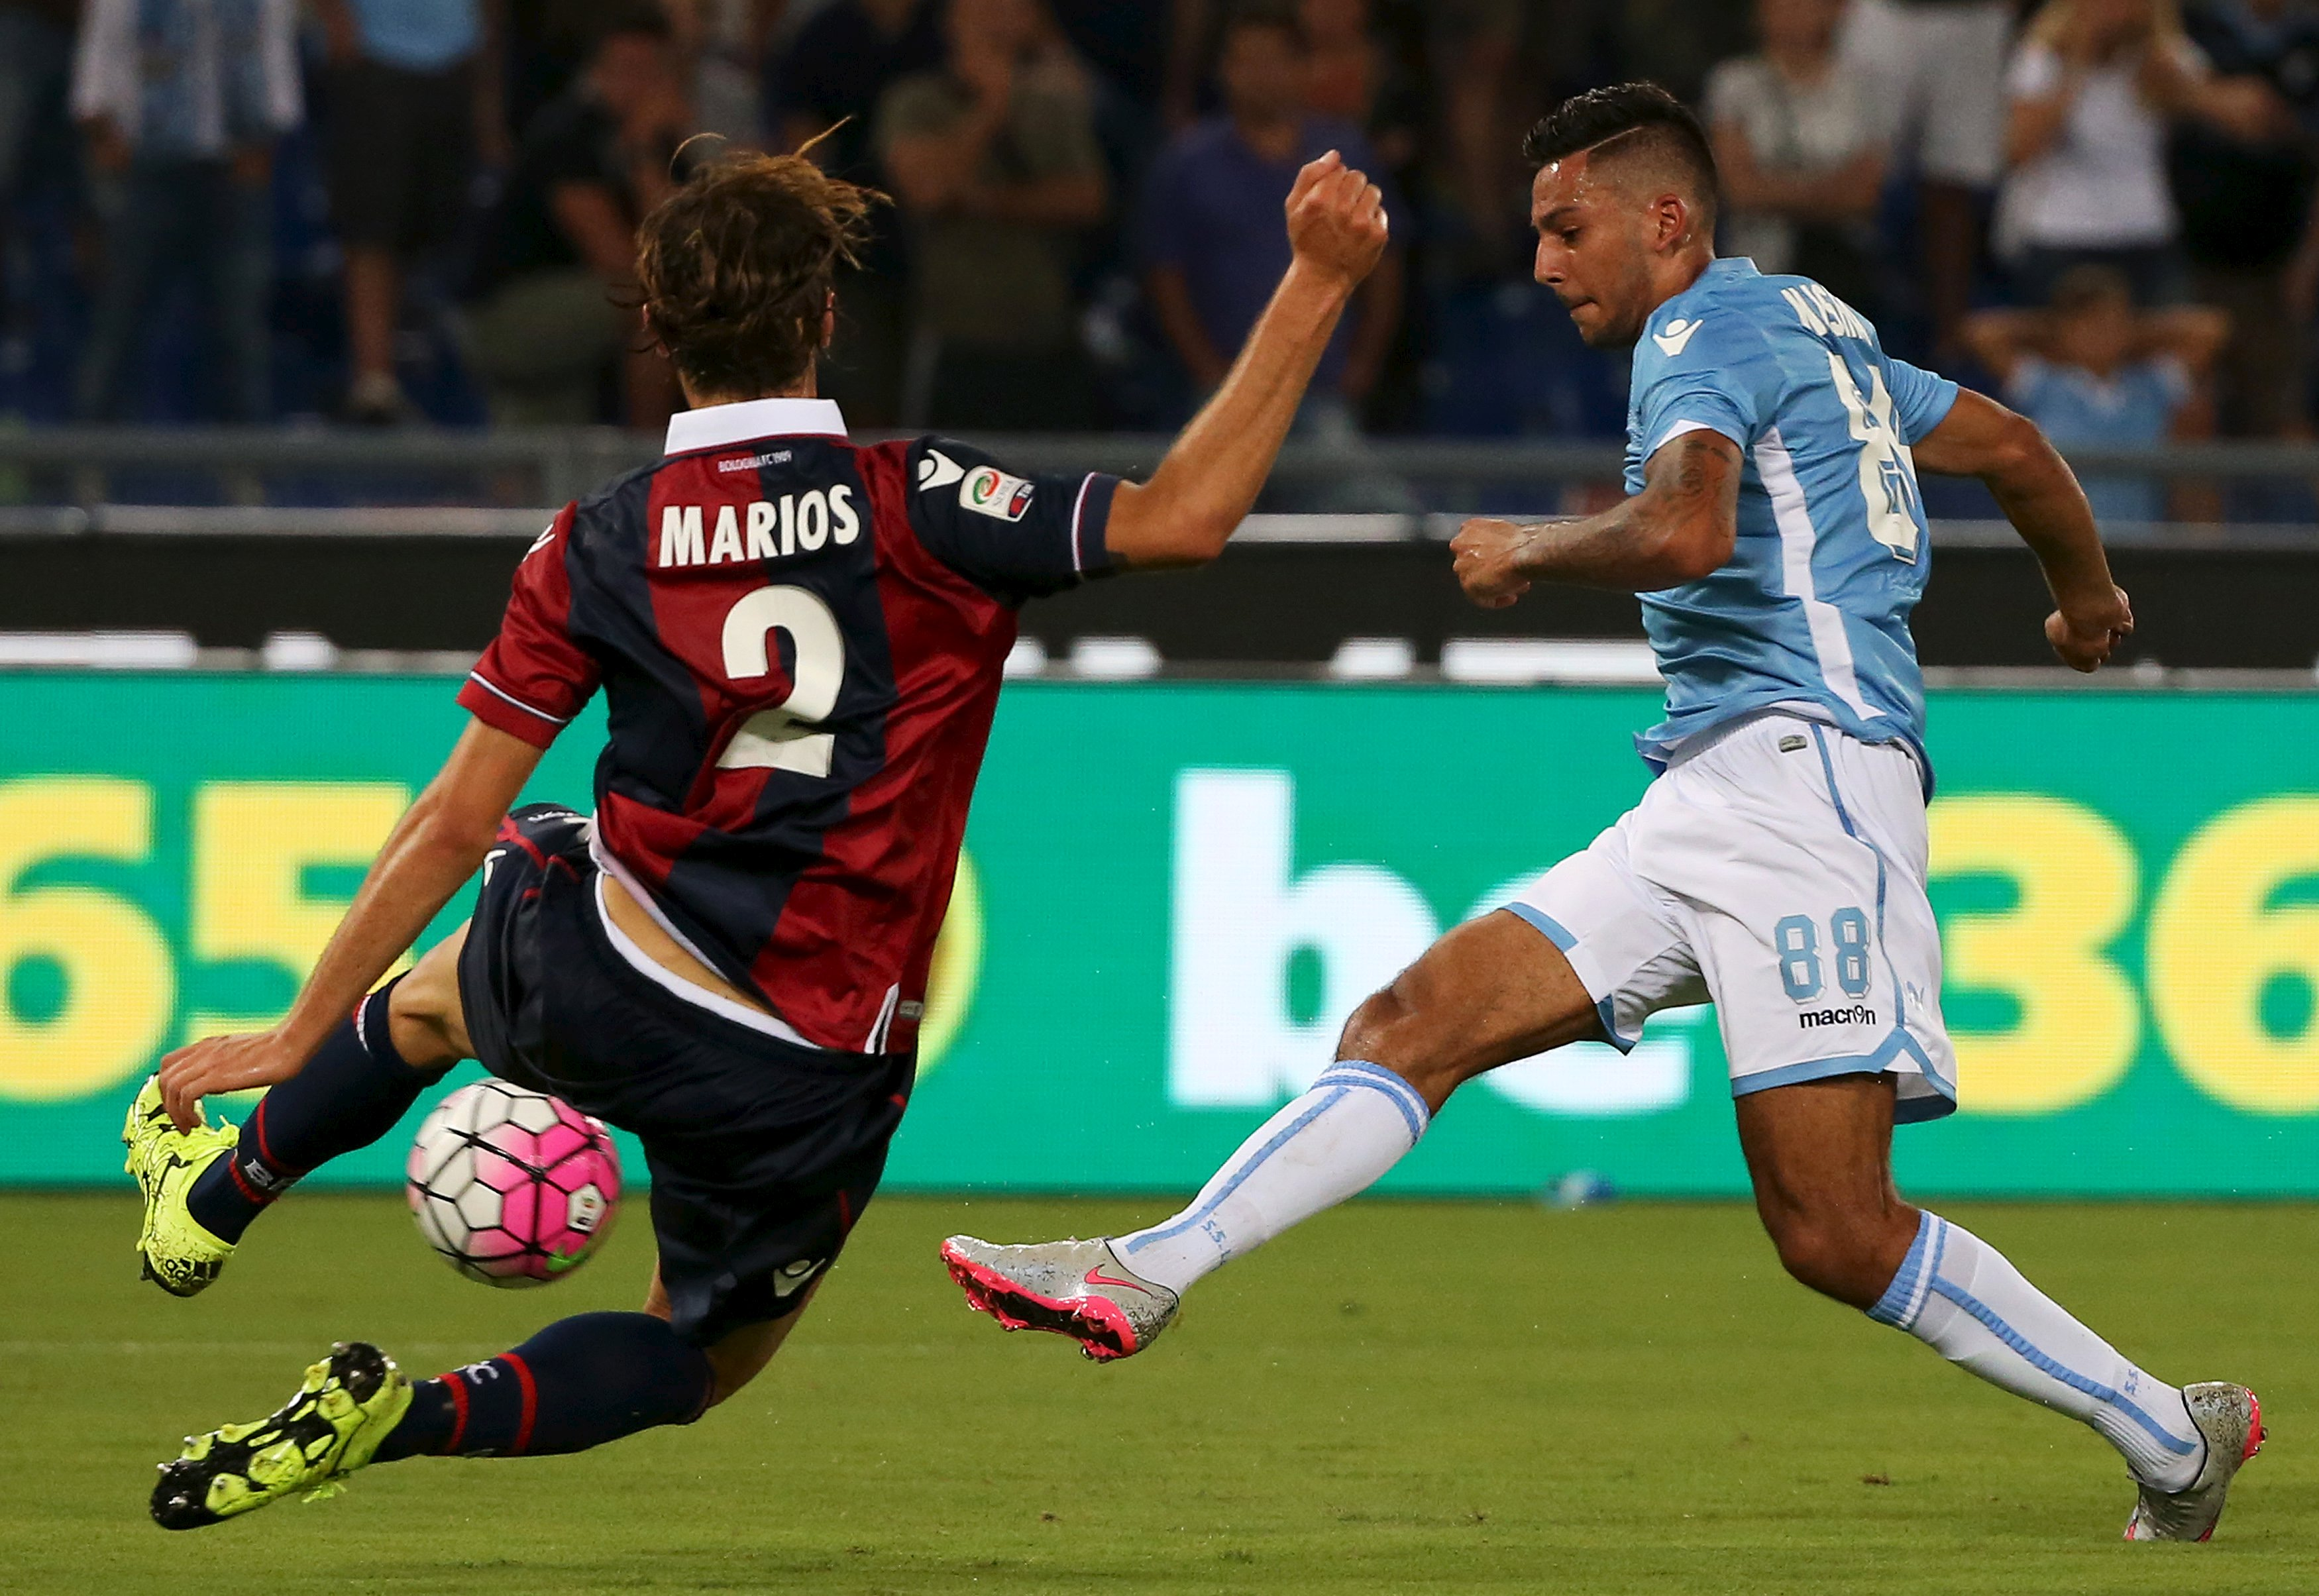 Lazio's Kishna kicks the ball as Morleo of Bologna tries to stop it during their Italian Serie A soccer match